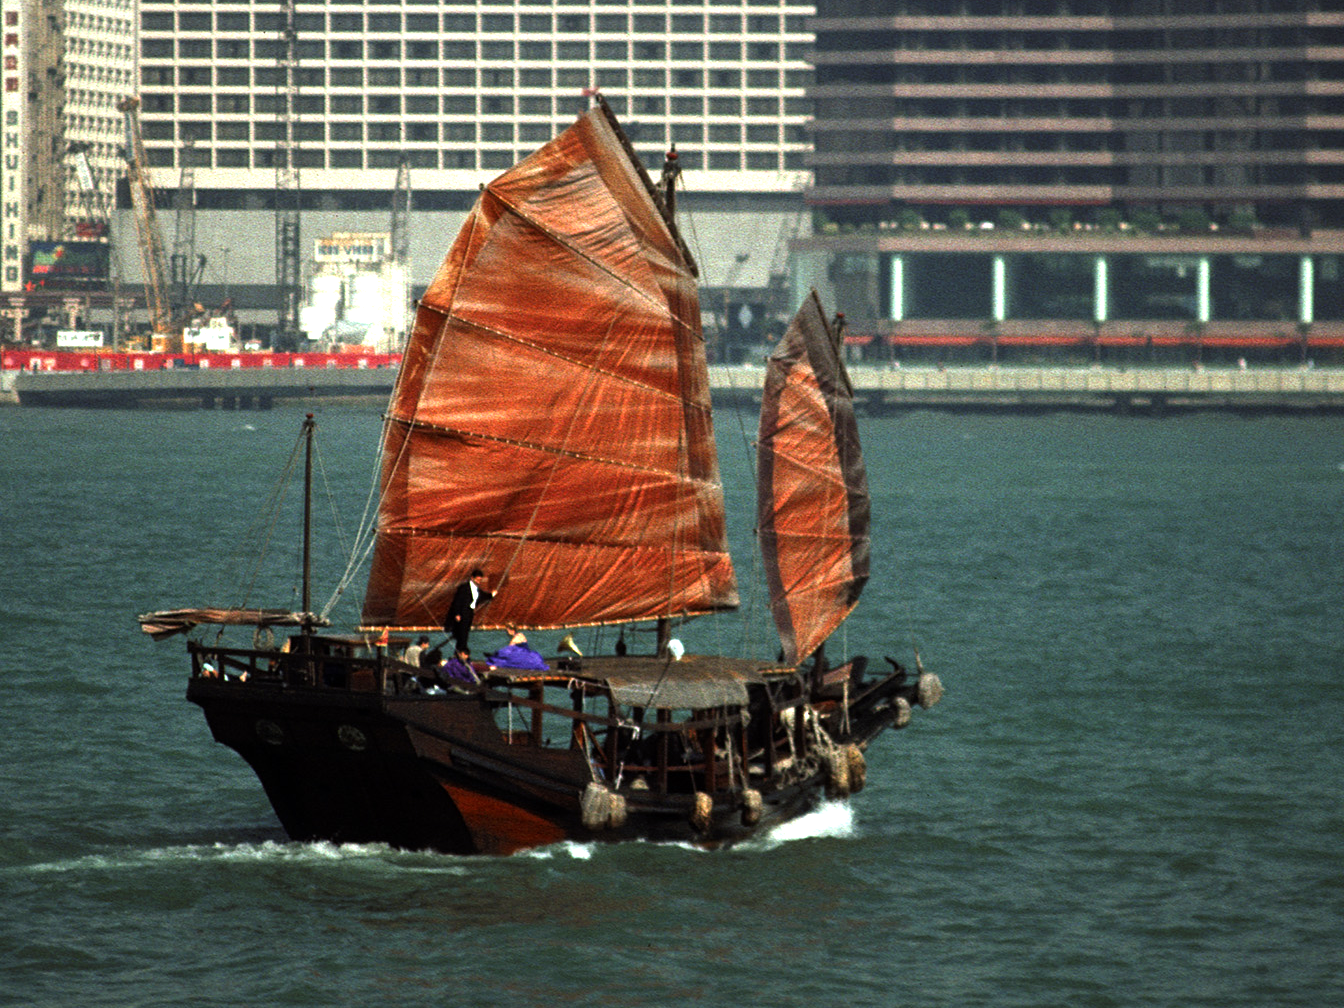 Image 2  shows the same image with secondary correction.The red of the sails and wooden hull are isolated and enriched using an HSL matte. Since the isolation is color based it does not need tracking. The extra color helps bring the junk forward in the picture, separating it from the background.